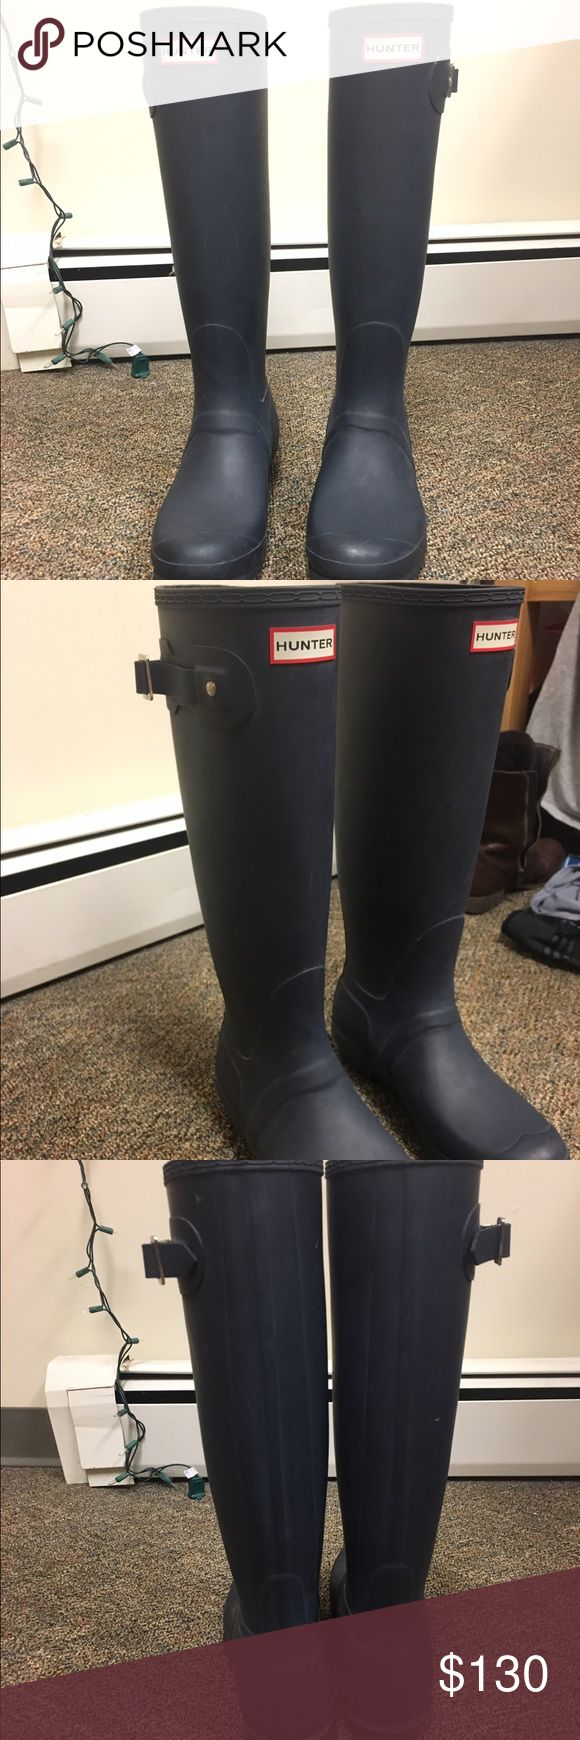 Navy blue tall hunter boots These boots are almost new, only worn a few times! Perfect for the rainy spring Hunter Boots Shoes Winter & Rain Boots